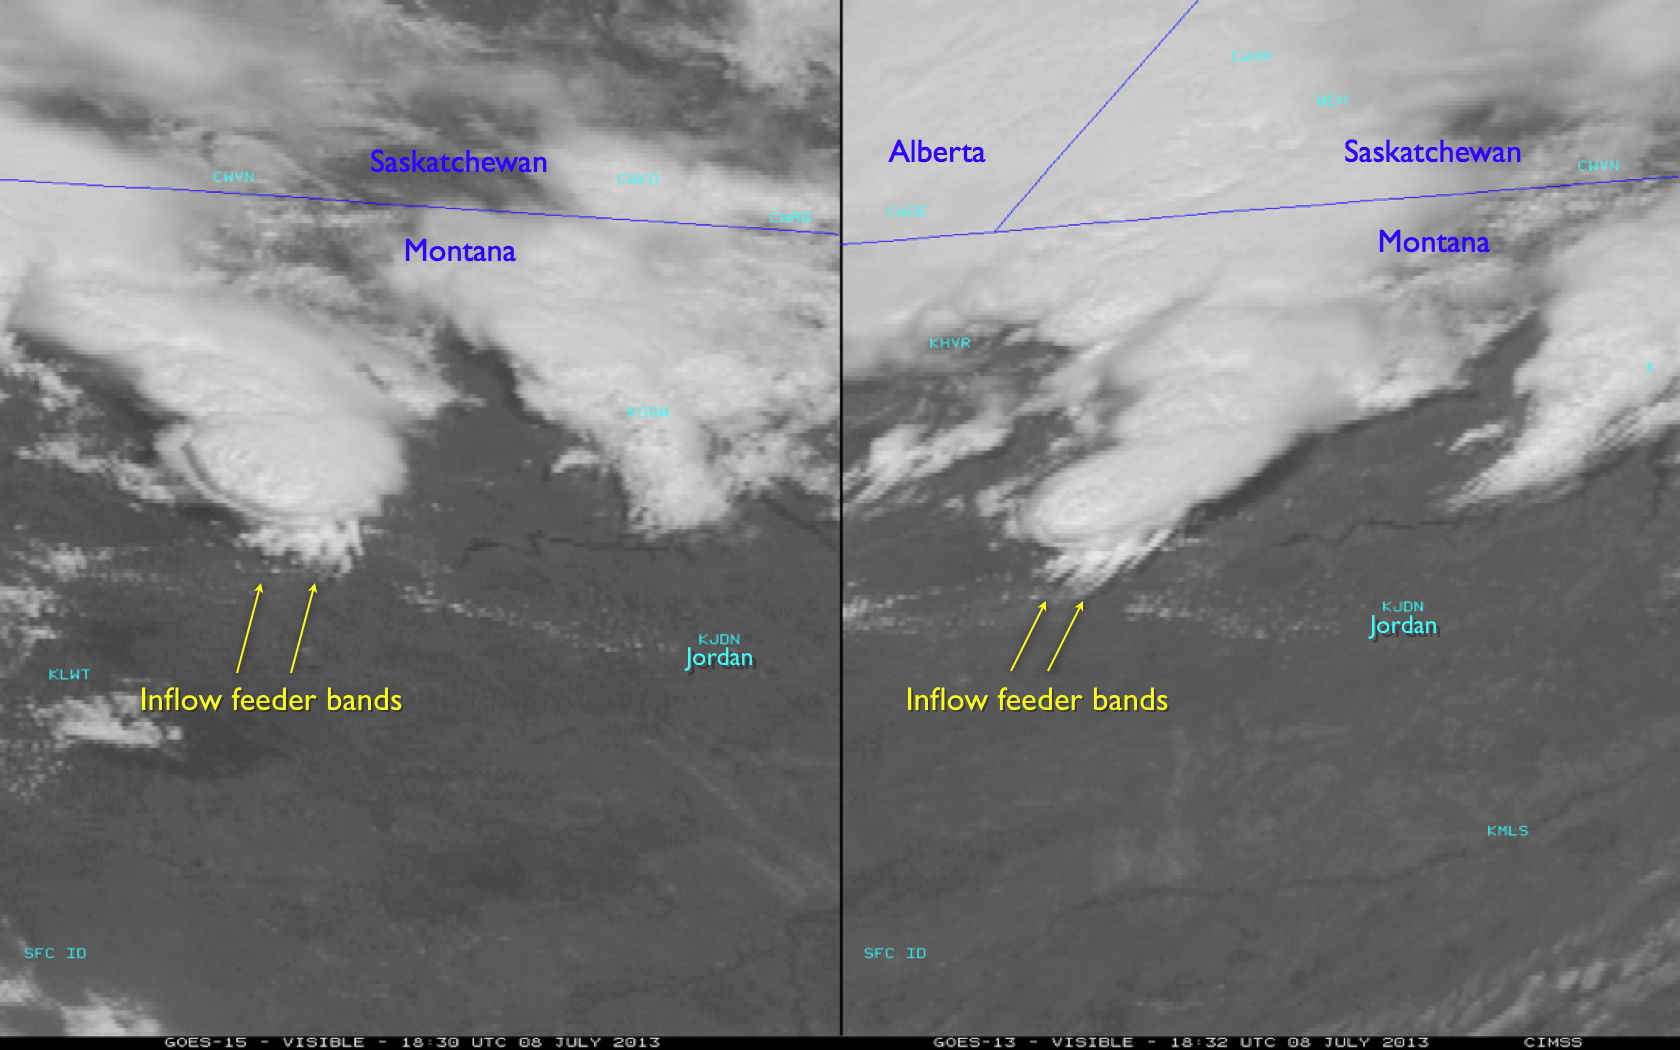 GOES-15 (left) and GOES-13 (right) 0.63 µm visible channel images (click image to play animation)